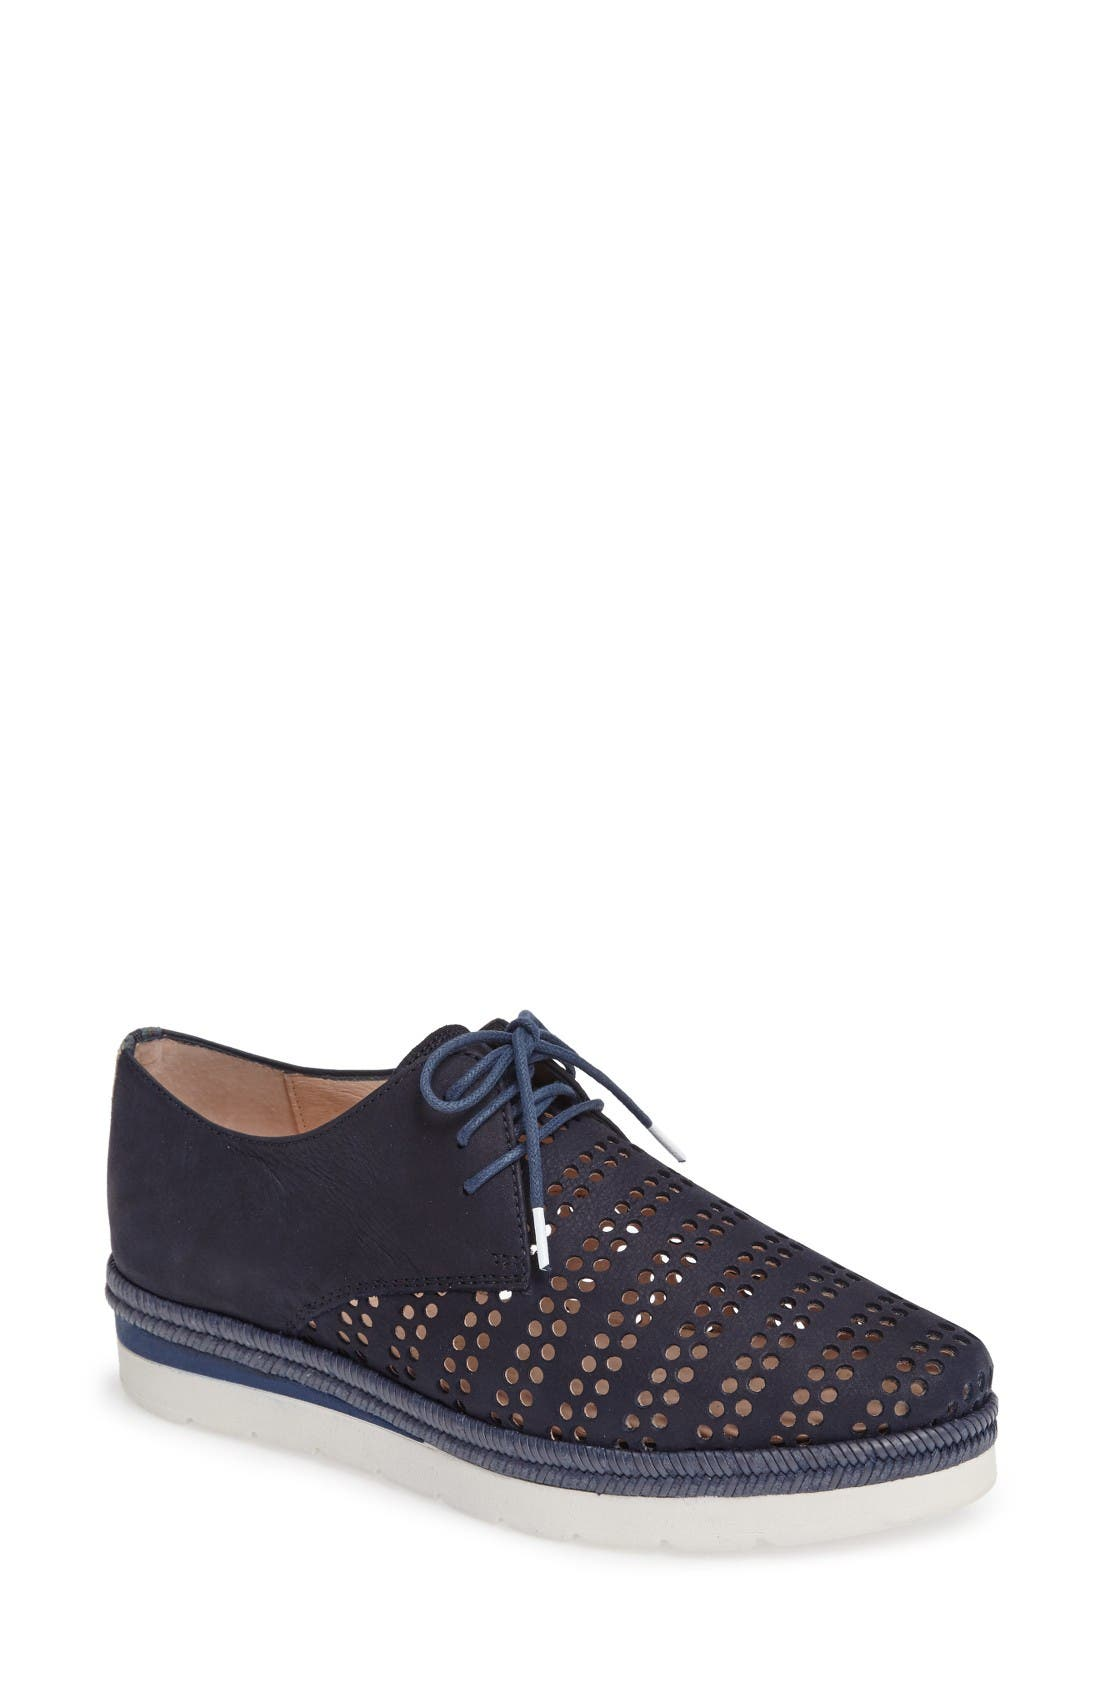 Hispanitas 'Laken' Perforated Platform Derby (Women)